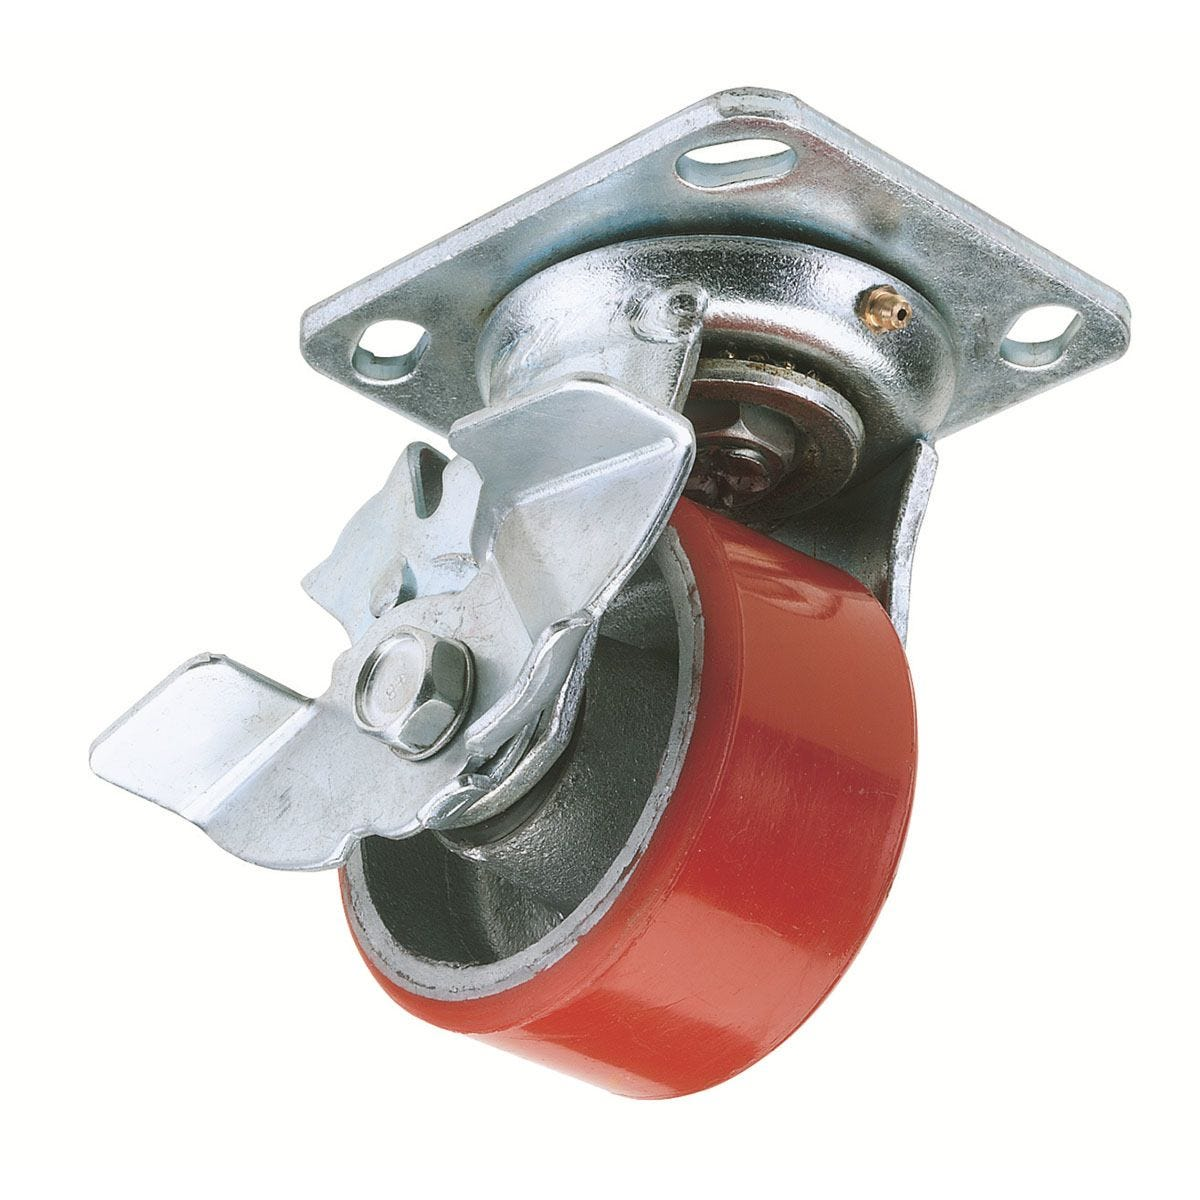 Draper 200mm Diameter Swivel Plate Fi x Ing Heavy Duty Polyurethane Wheel with Brake - S.W.L. 500Kg